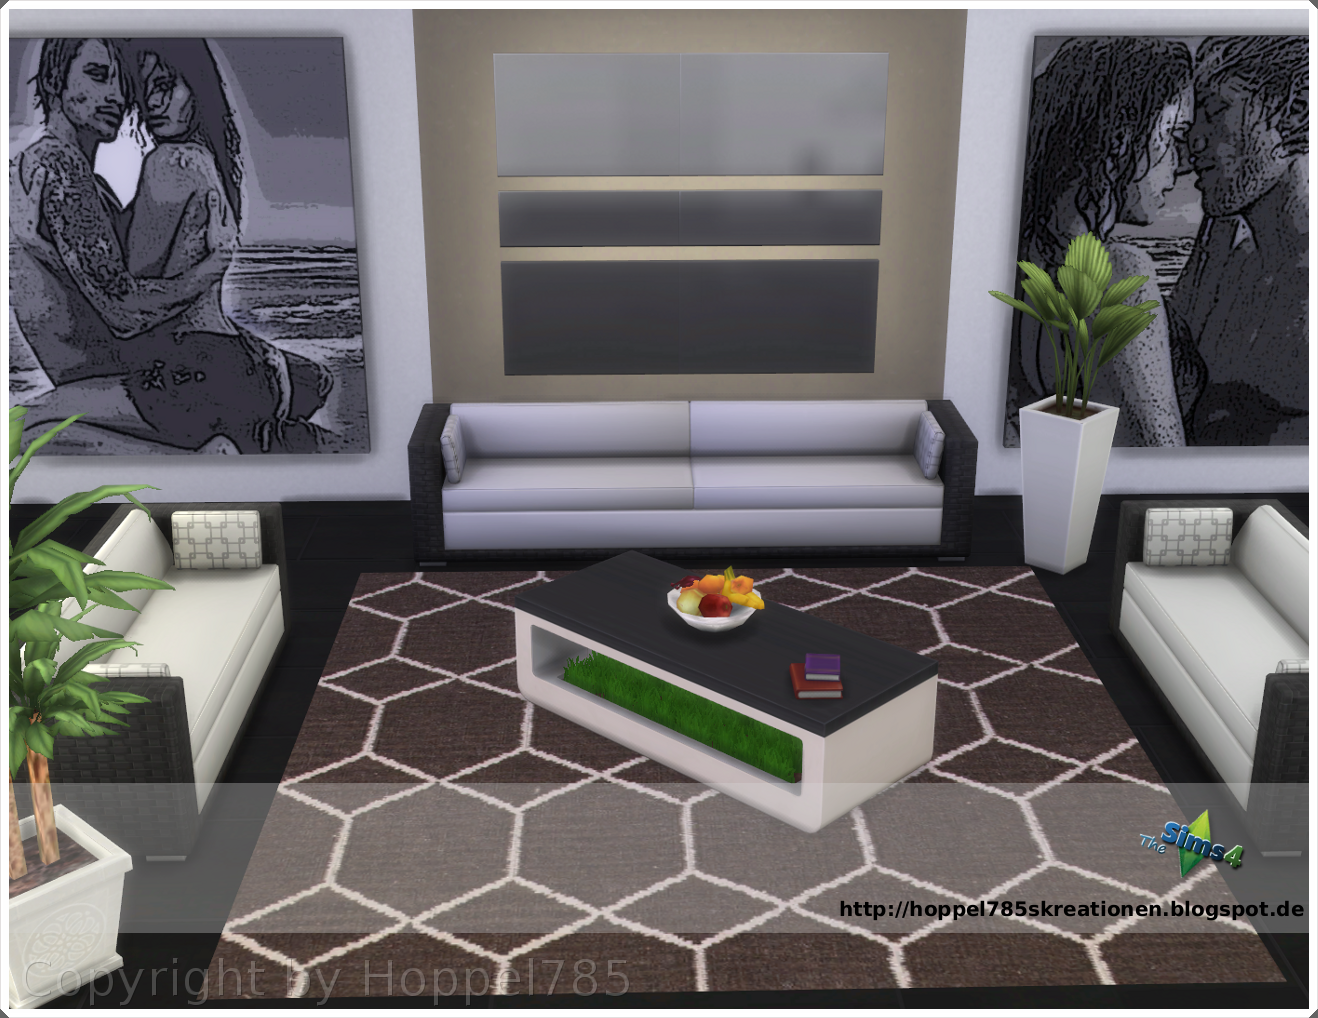 Sims 2 Teppiche Hoppel785s Kreationen Sims 4 Rugs By Hoppel785